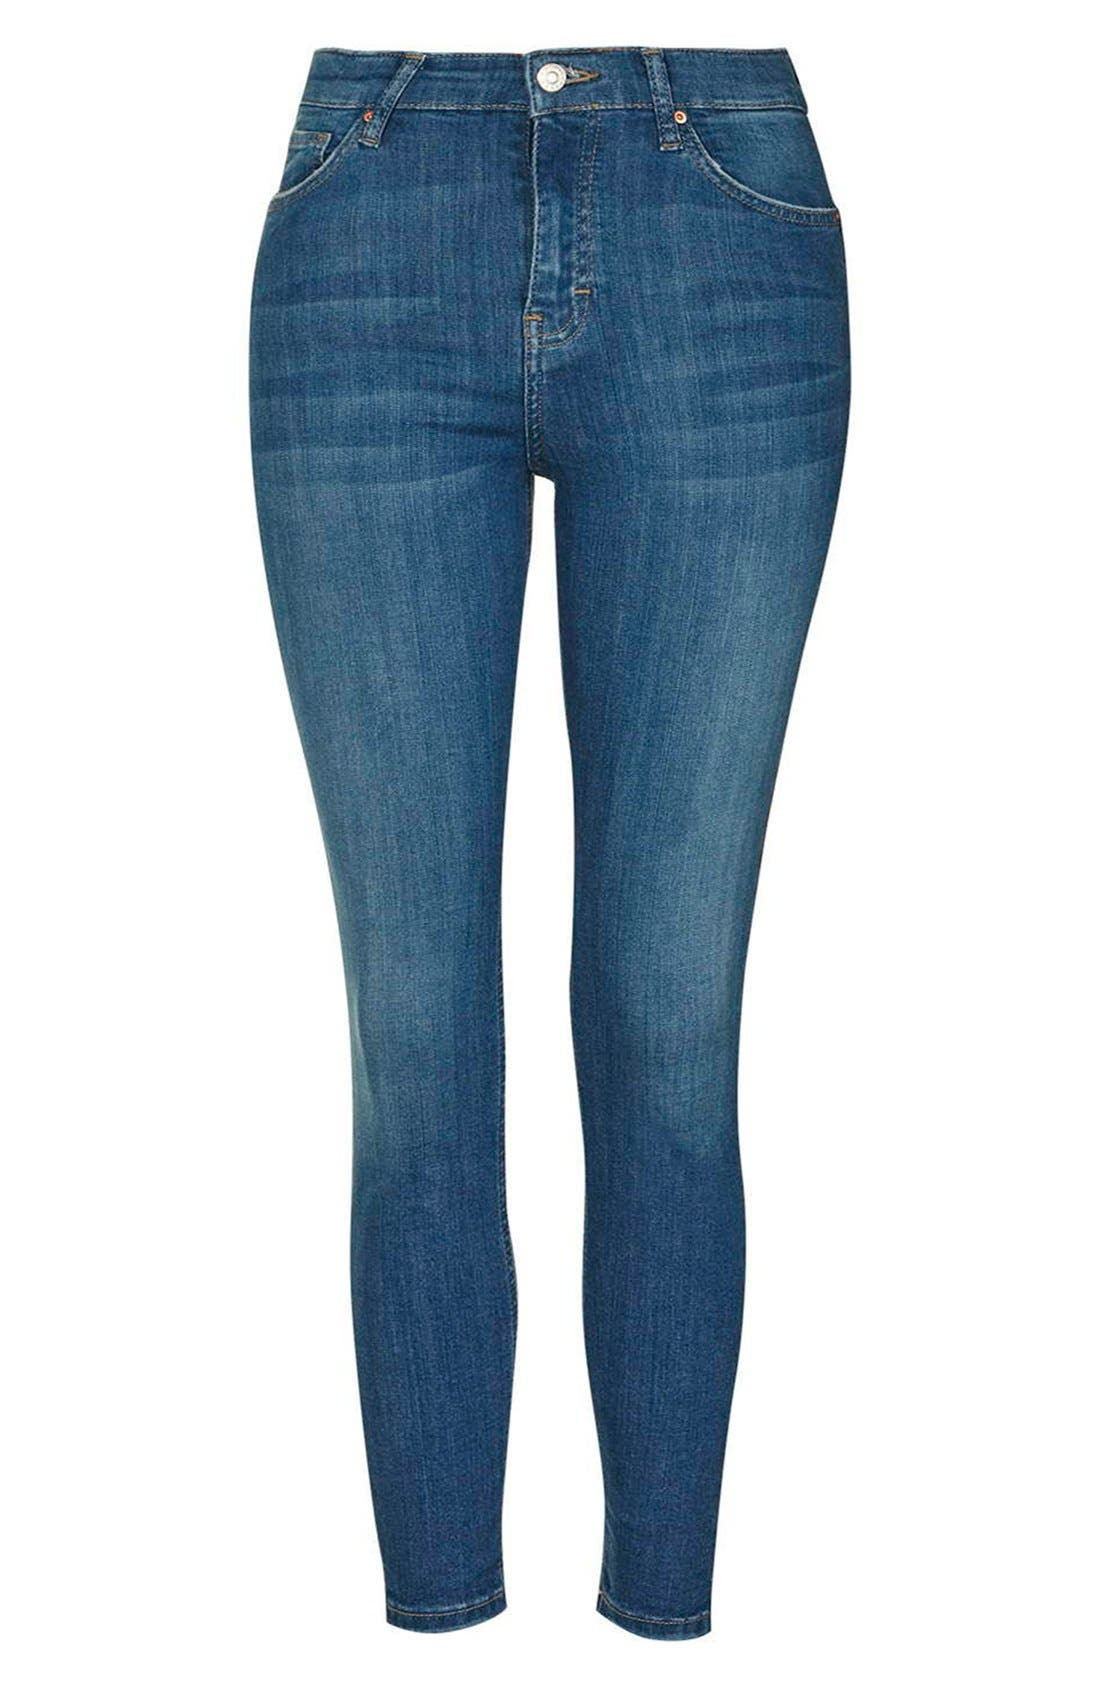 'Jamie' High Waist Ankle Skinny Jeans,                             Alternate thumbnail 4, color,                             Blue